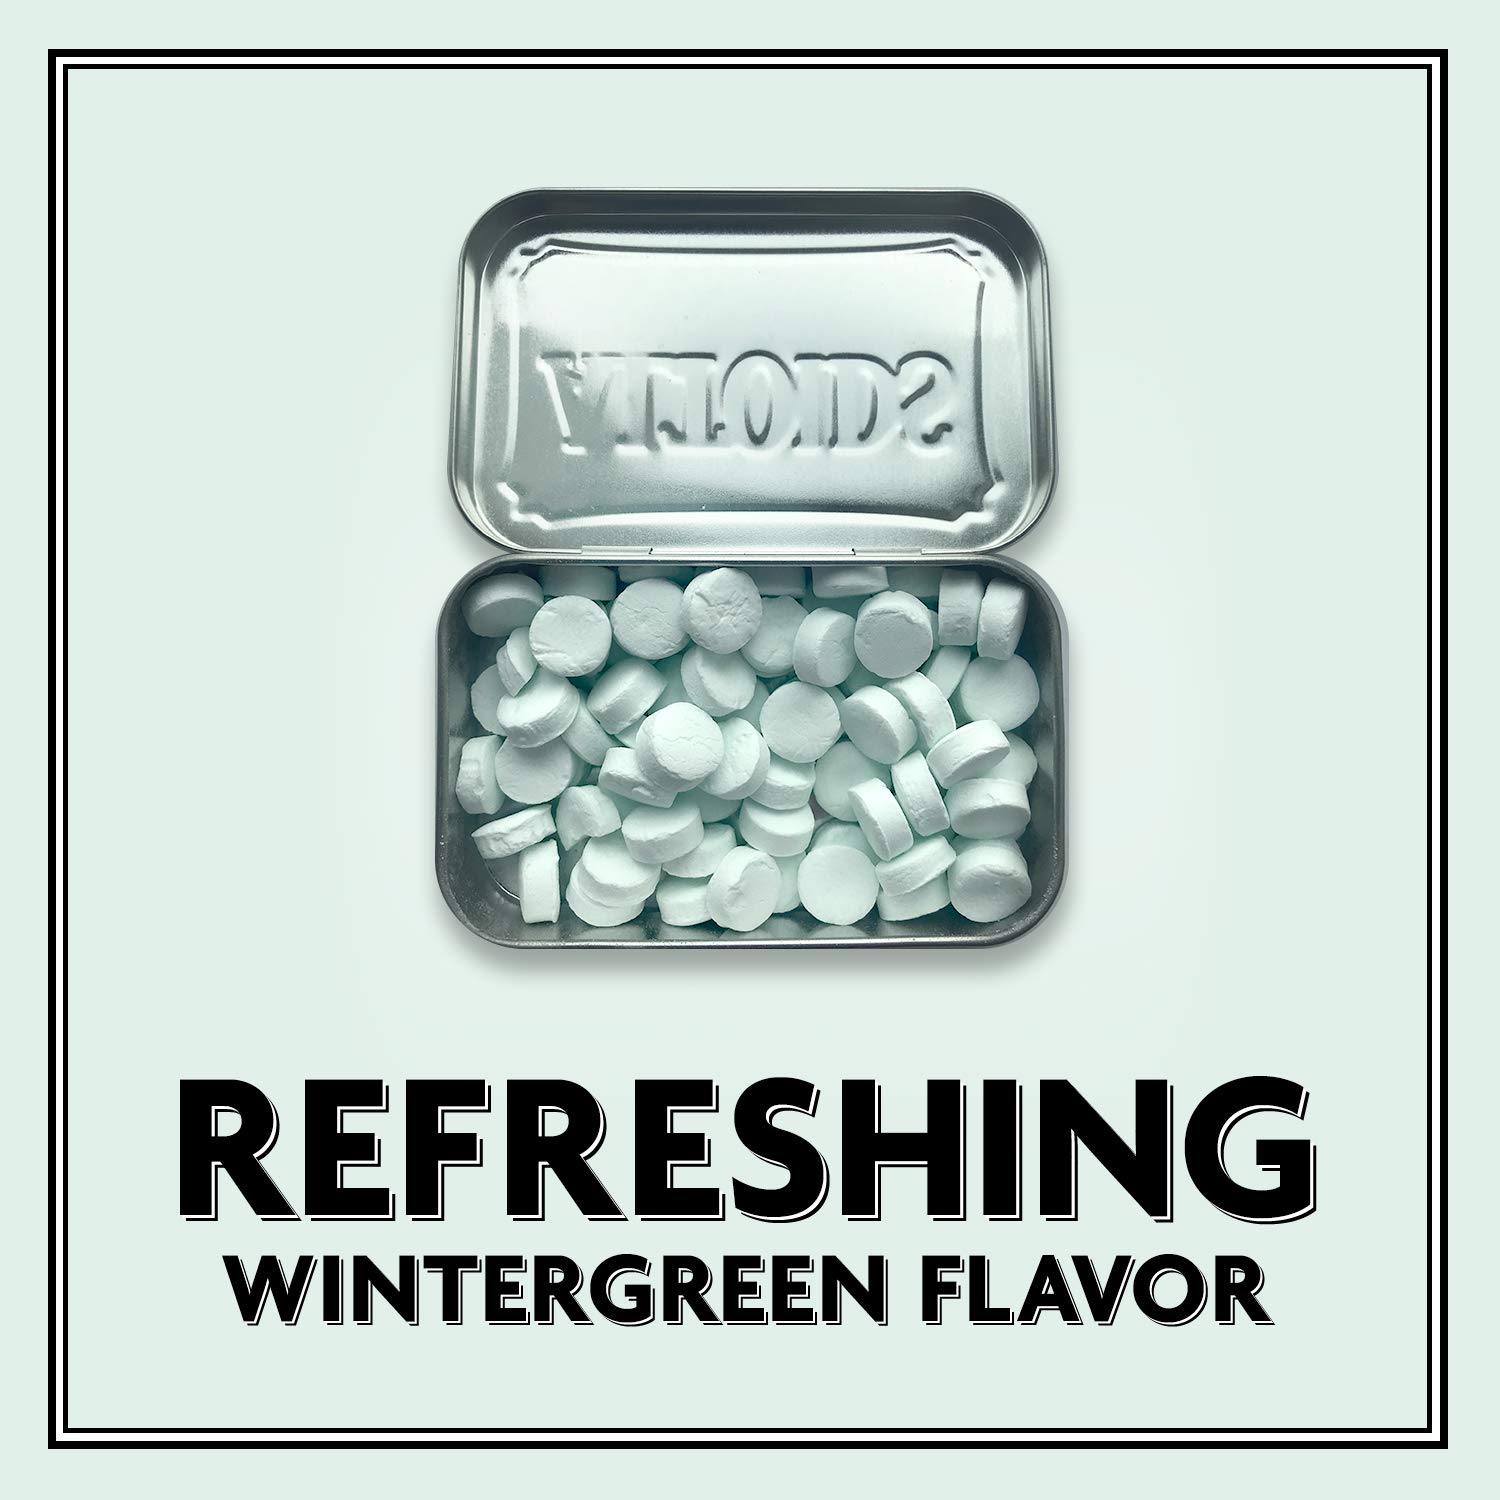 ALTOIDS Classic Wintergreen Breath Mints, 1.76-Ounce Tin (Pack of 12) by Altoids (Image #7)